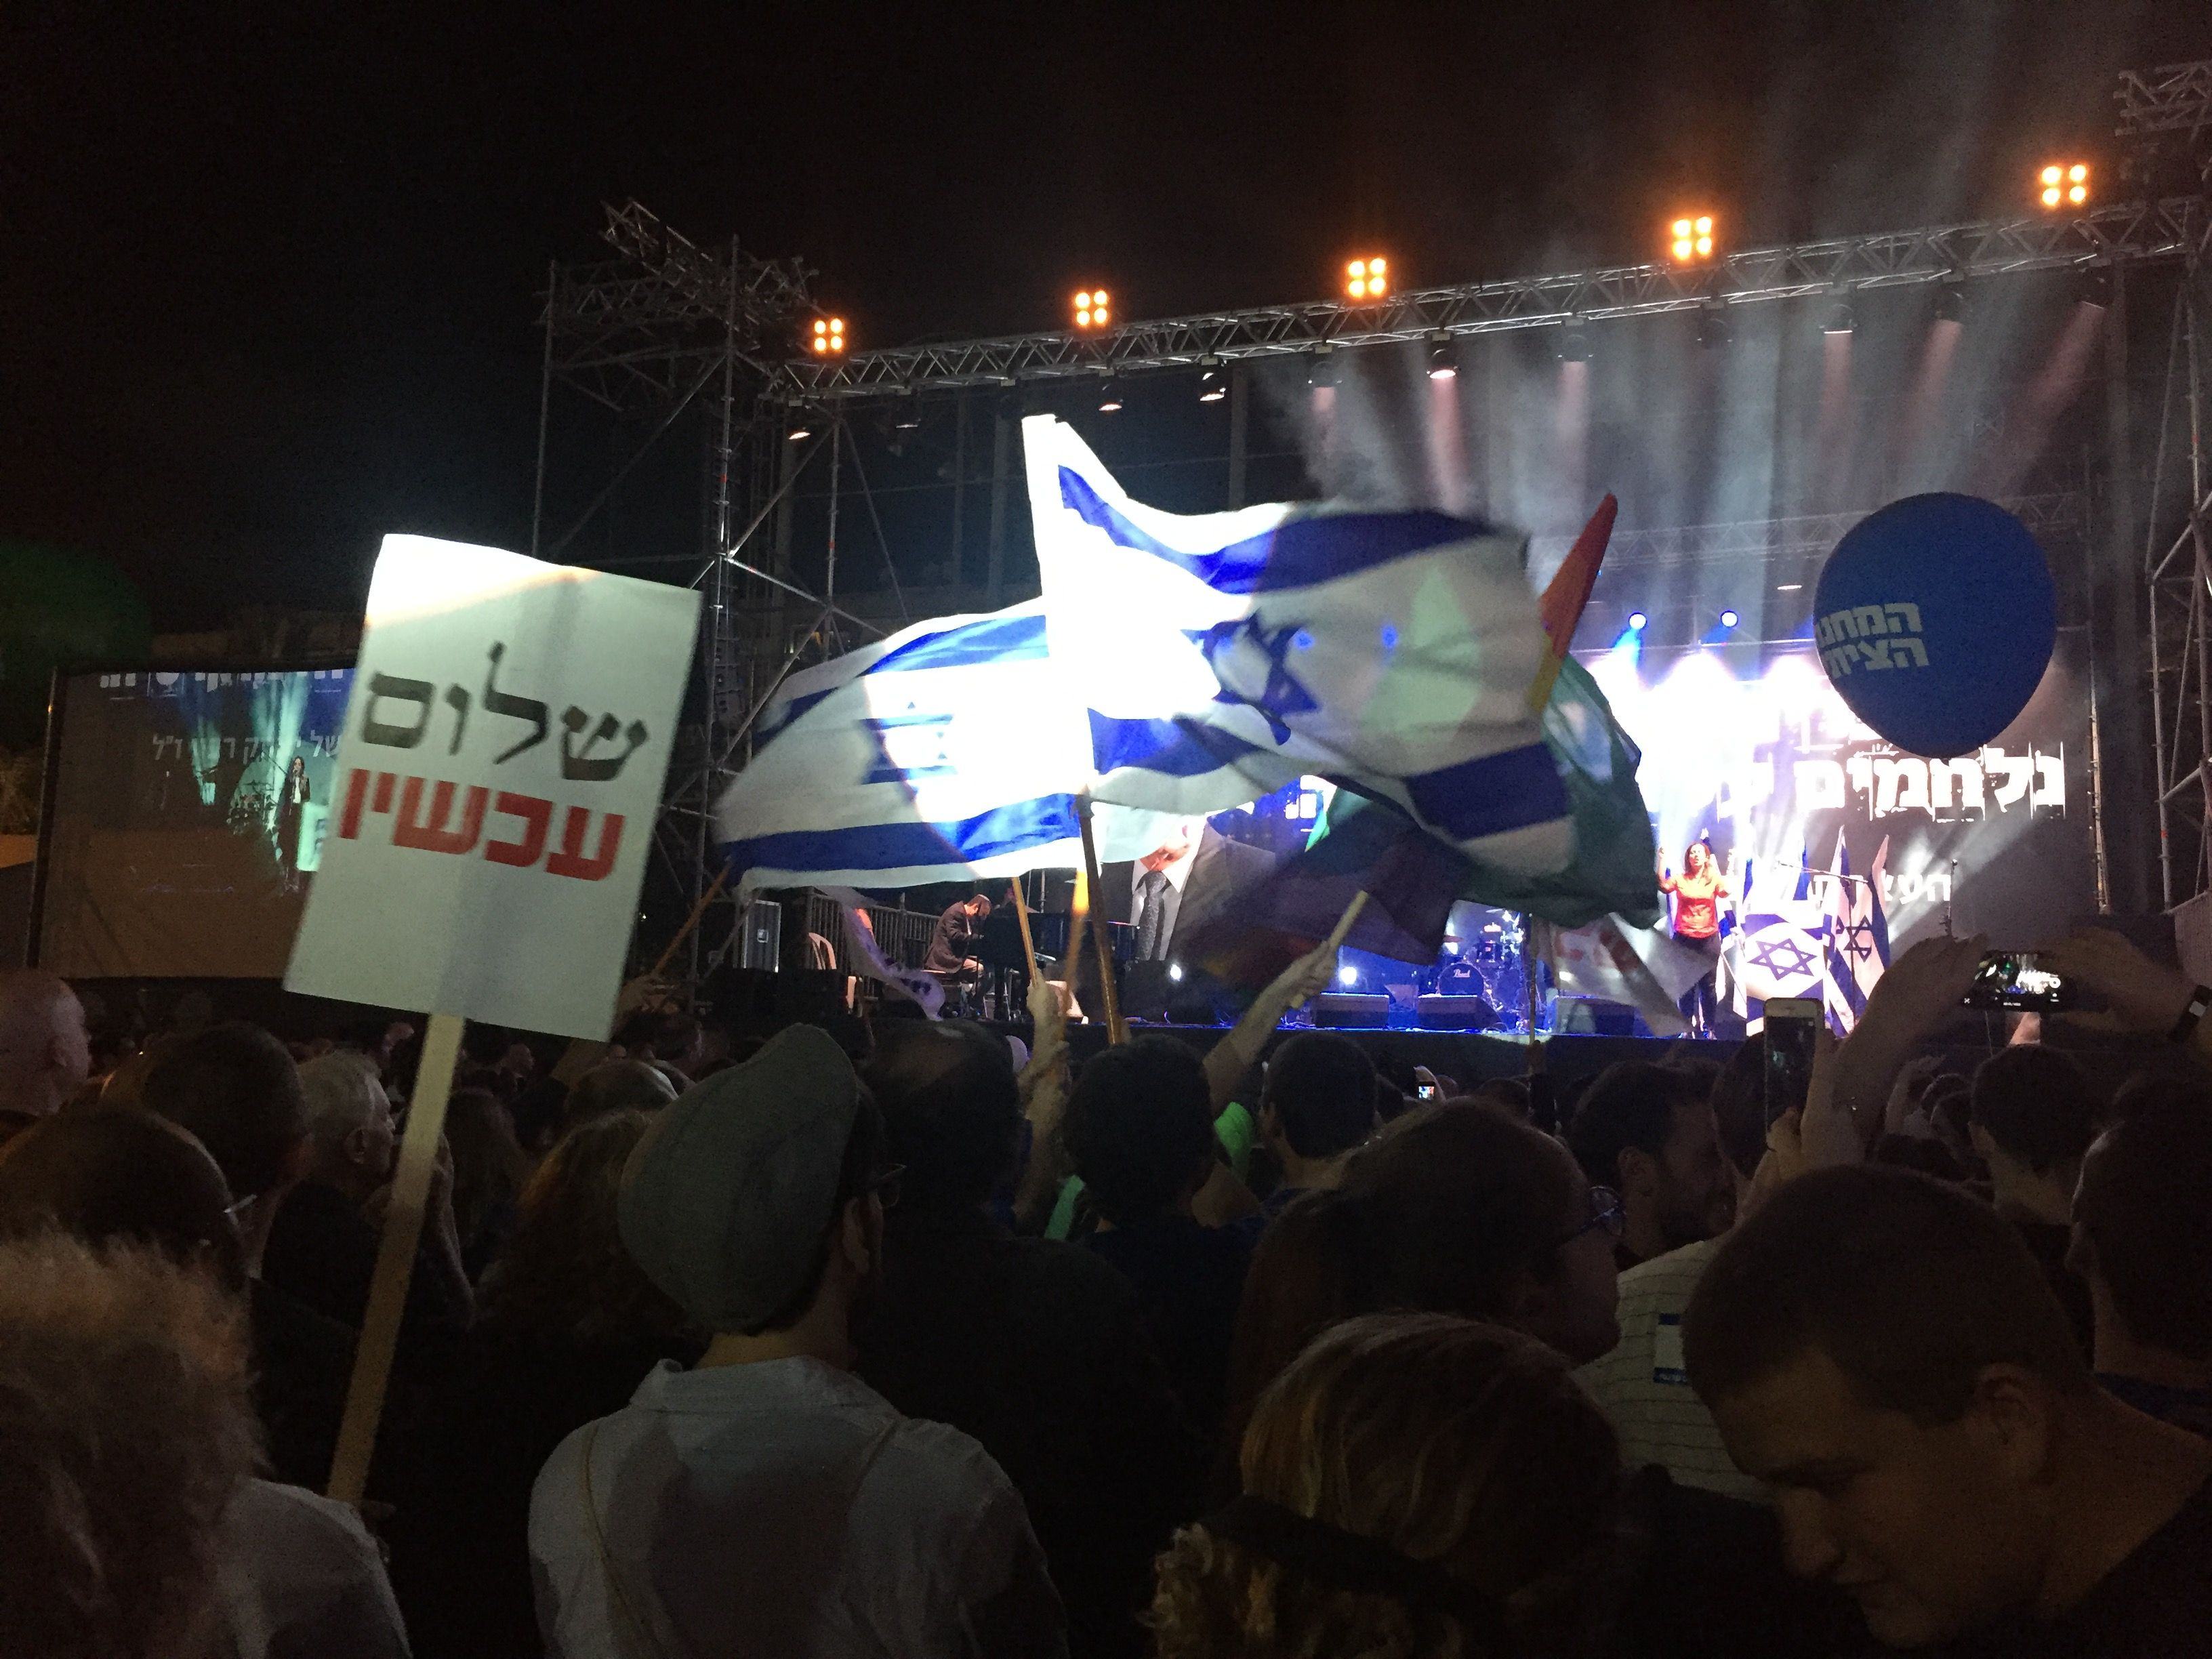 Activists from left-wing political groups Labor and Meretz along with pro-Peace group Peace Now wave flags at the Rabin memorial rally